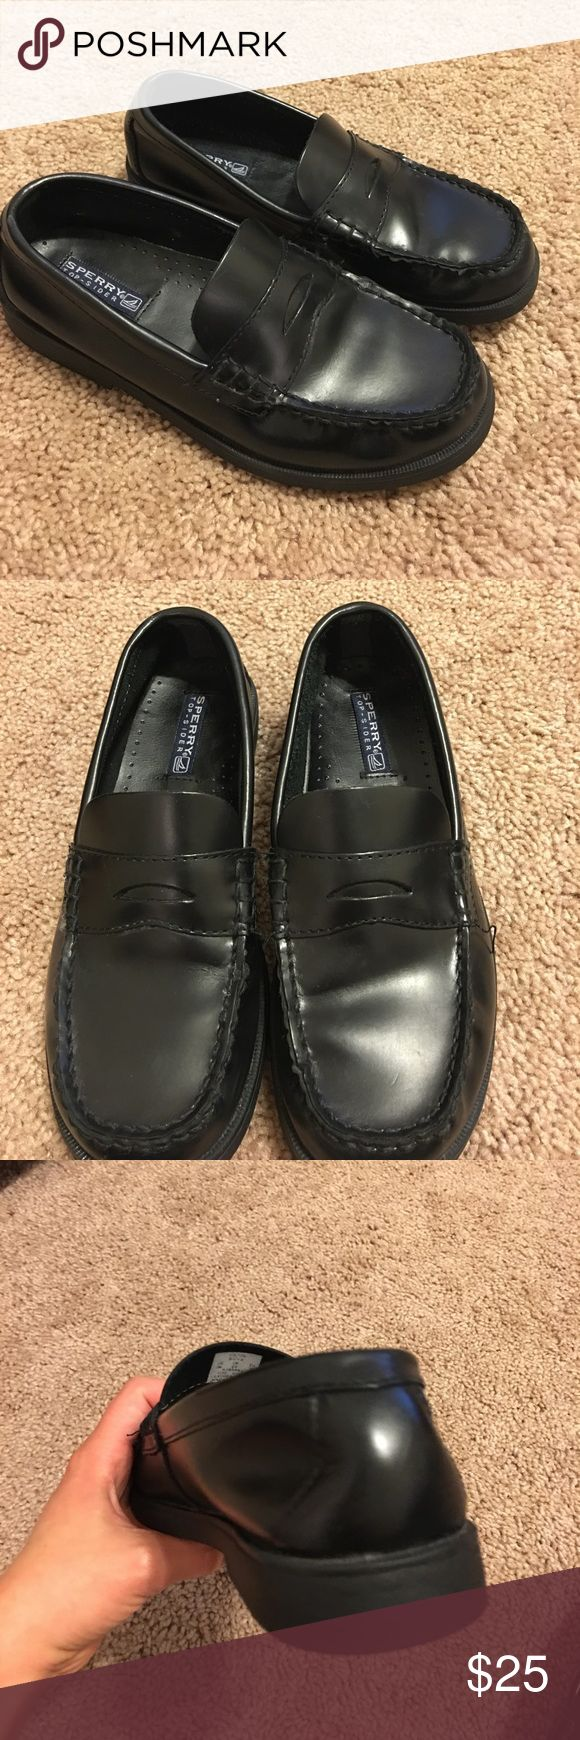 SPERRY top- sider shoes for boys Used in very good condition . Size 3m. The back of one of the shoes is a bit pushed in , see photos . Sperry Top-Sider Shoes Dress Shoes